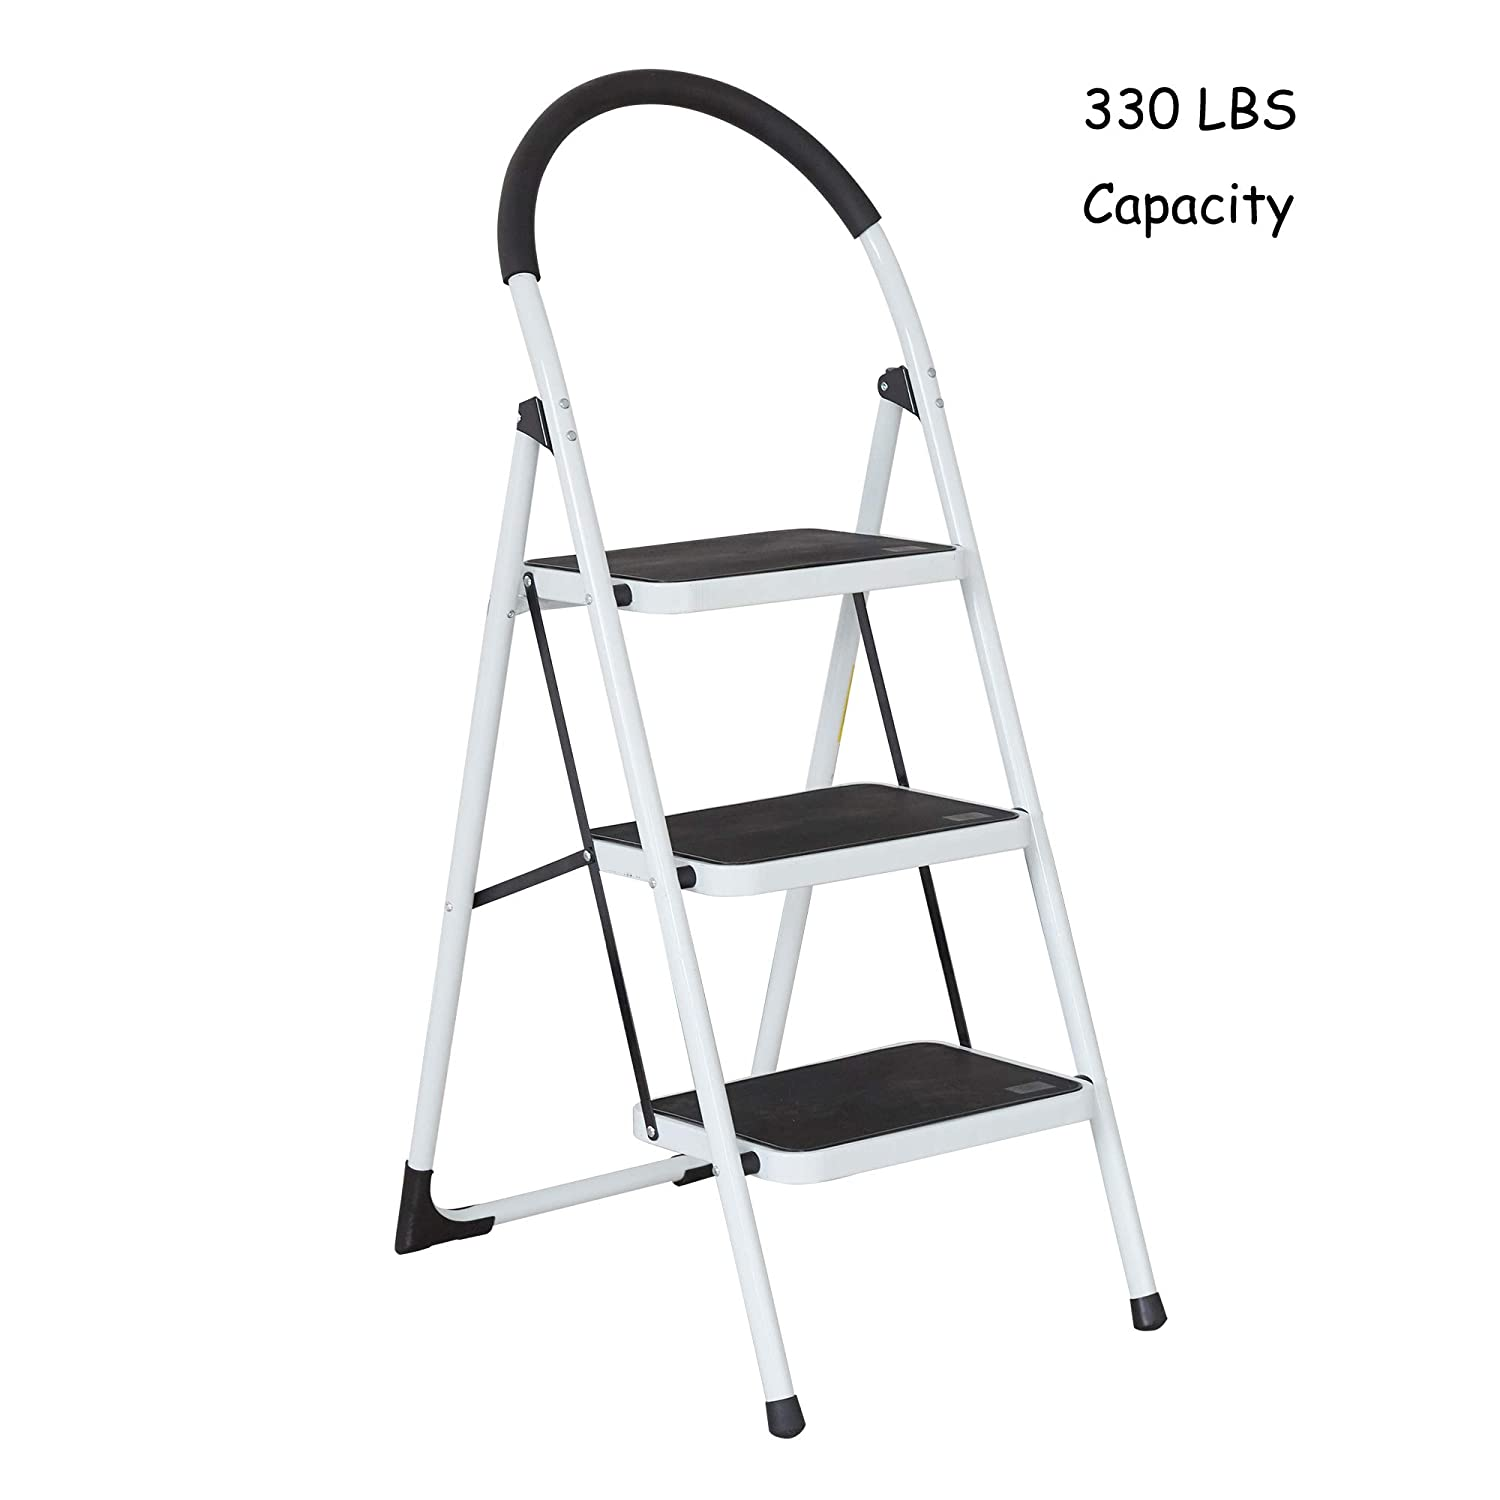 Stable Folding Step Ladder 3 Step with Grips Sturdy Step Stool with Wide Pedal 330 Lbs Capacity